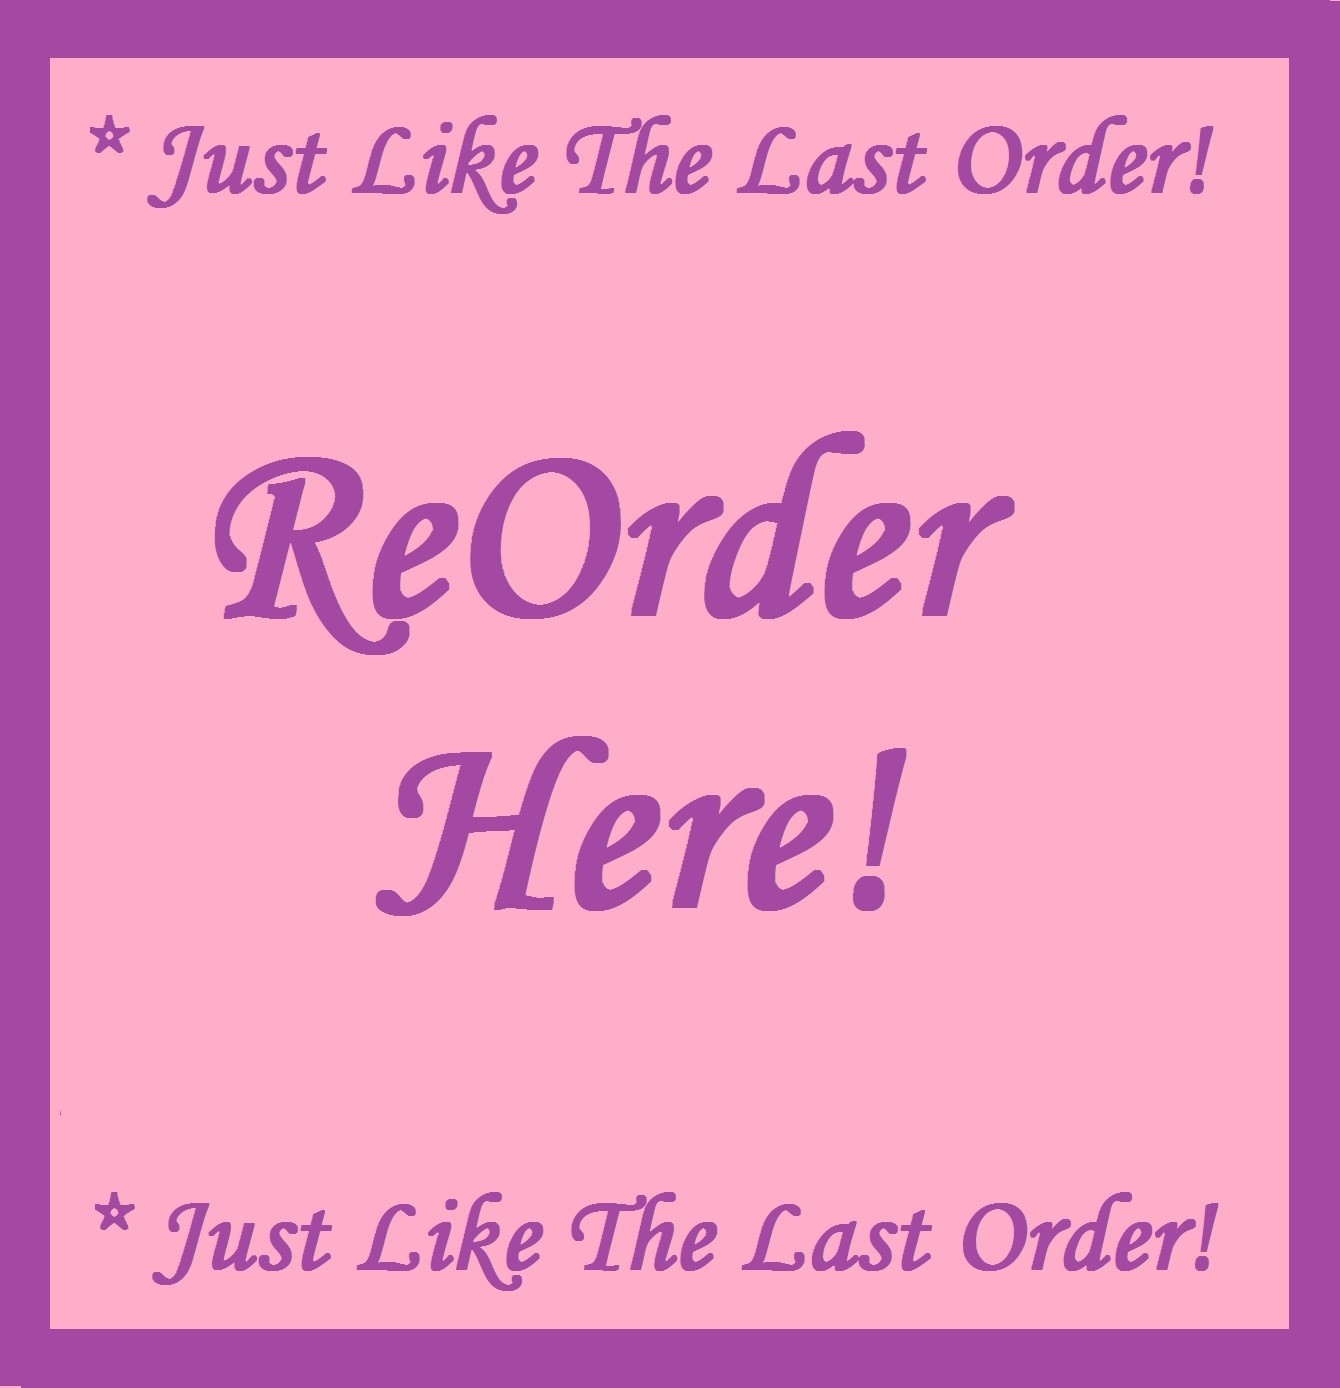 (ReOrder Here)